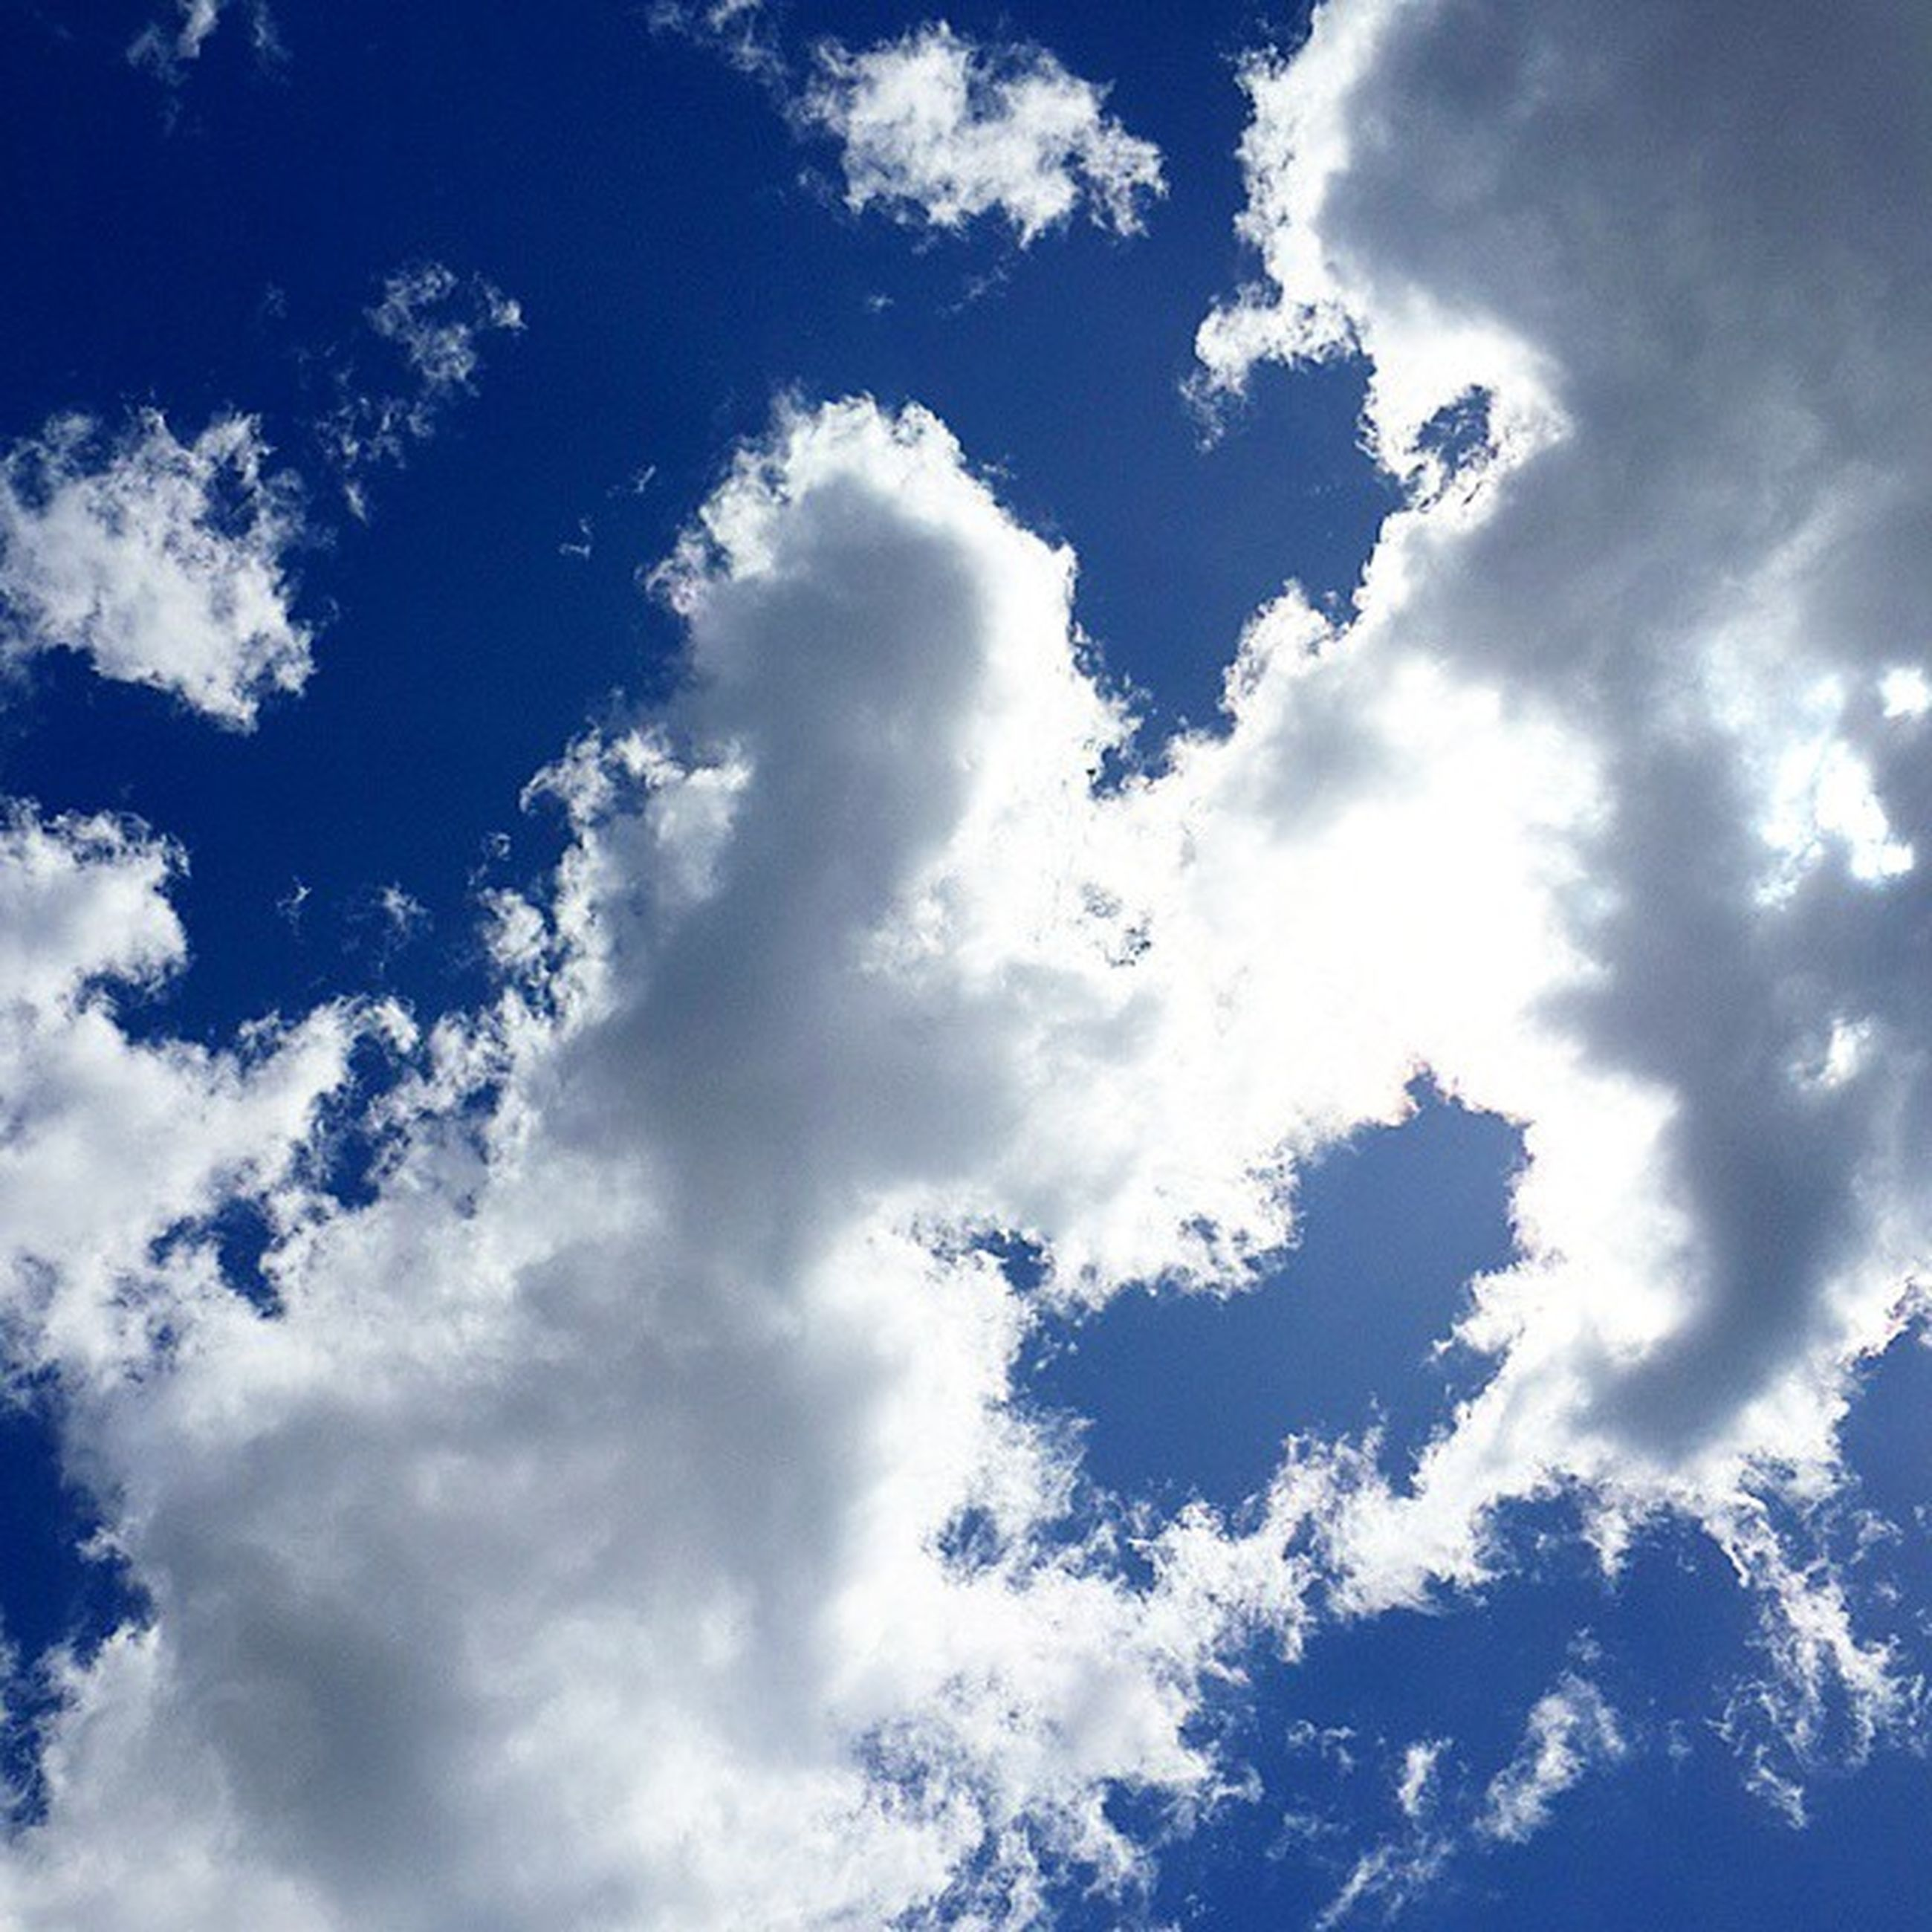 low angle view, sky, sky only, cloud - sky, beauty in nature, tranquility, blue, backgrounds, scenics, nature, full frame, cloudscape, tranquil scene, cloudy, white color, cloud, idyllic, fluffy, day, outdoors